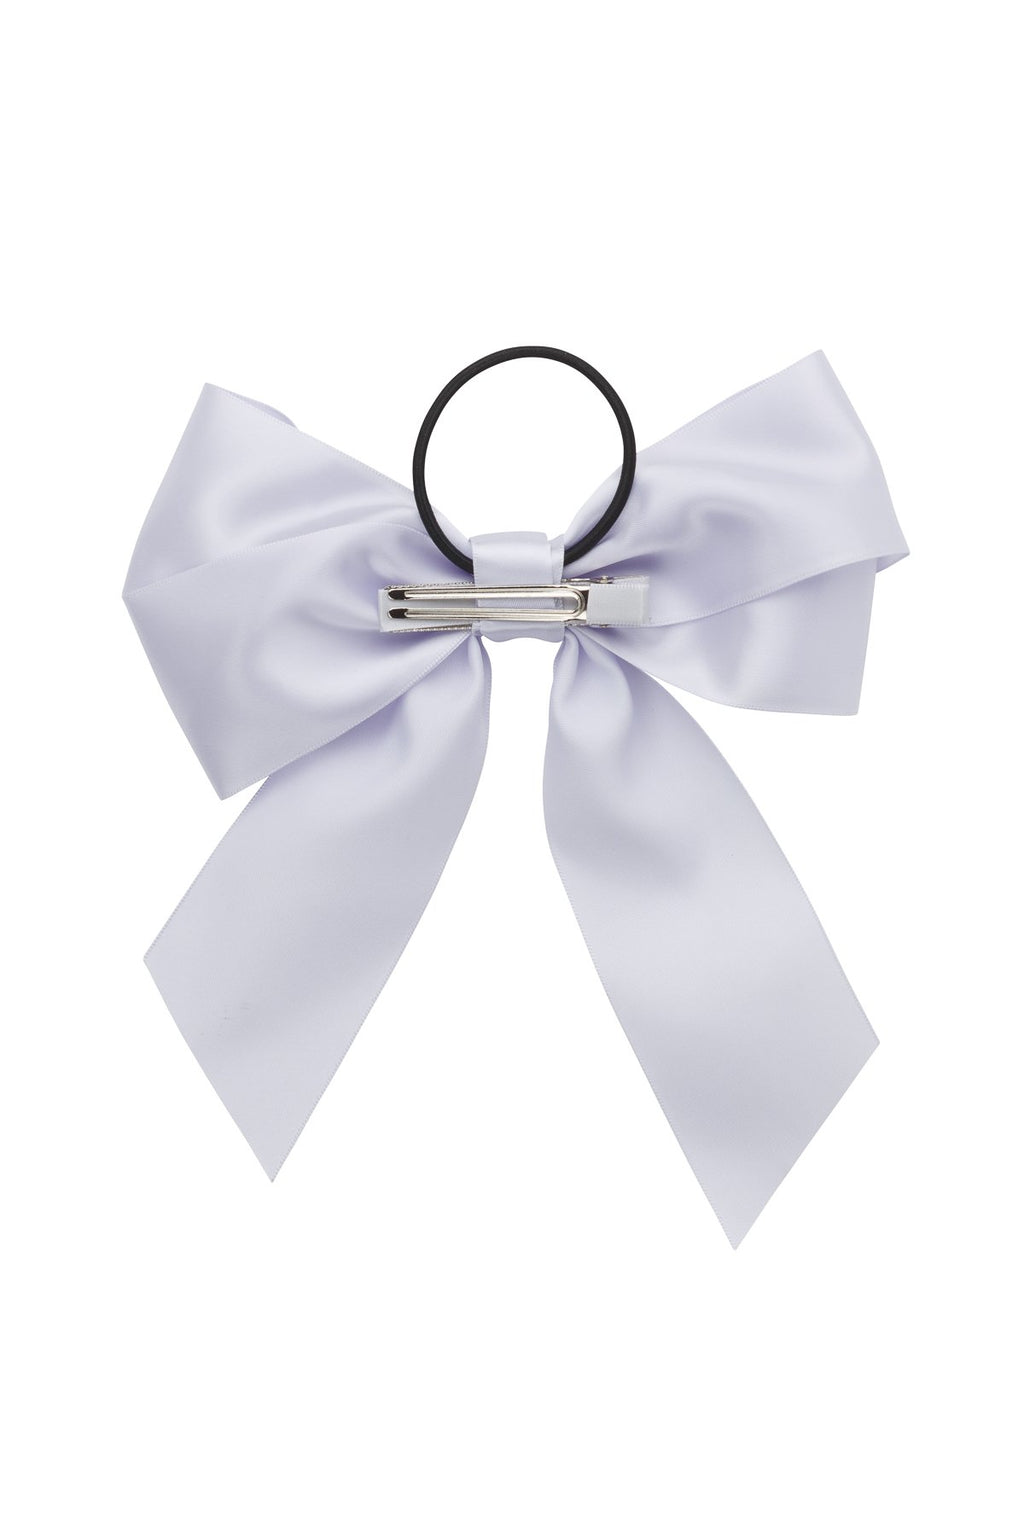 Oversized Bow Pony/Clip - Lilac - PROJECT 6, modest fashion